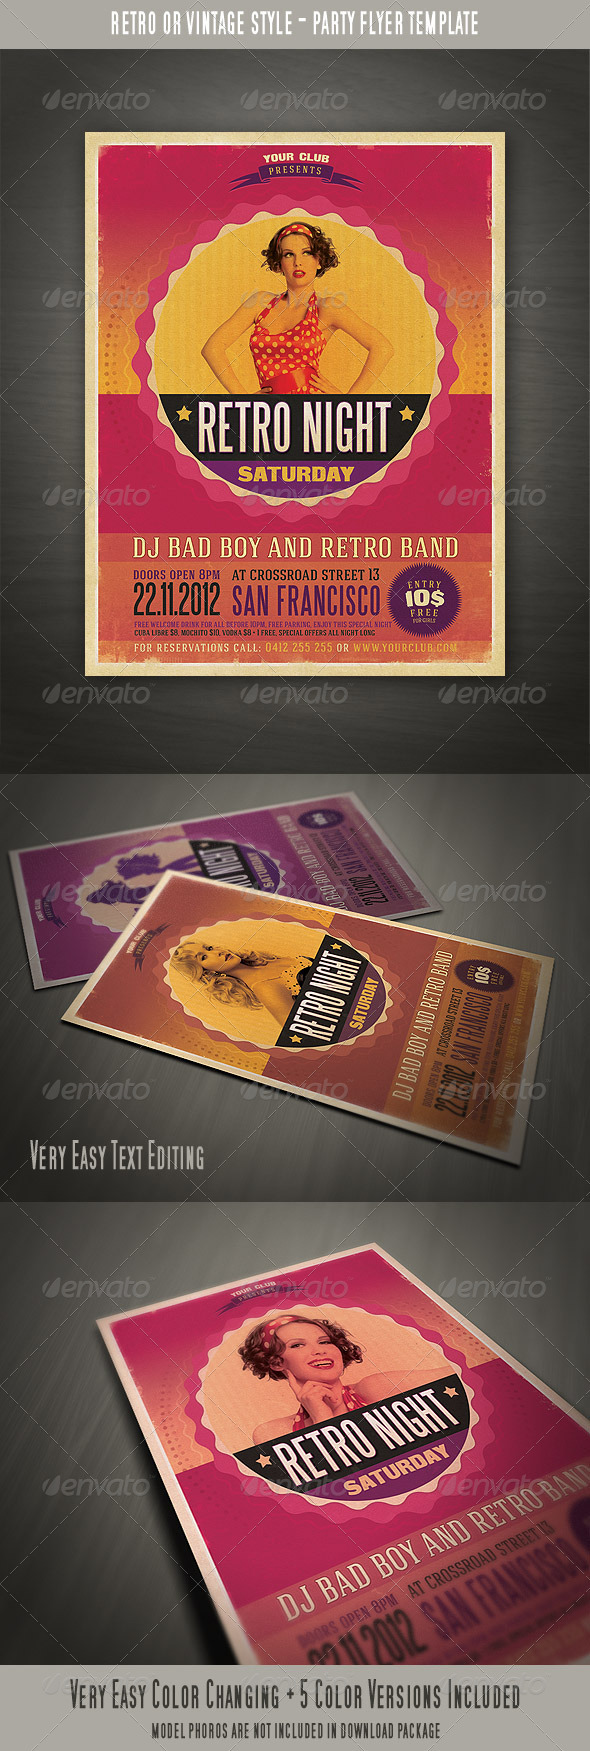 GraphicRiver Retro Style Party Flyer 3295283